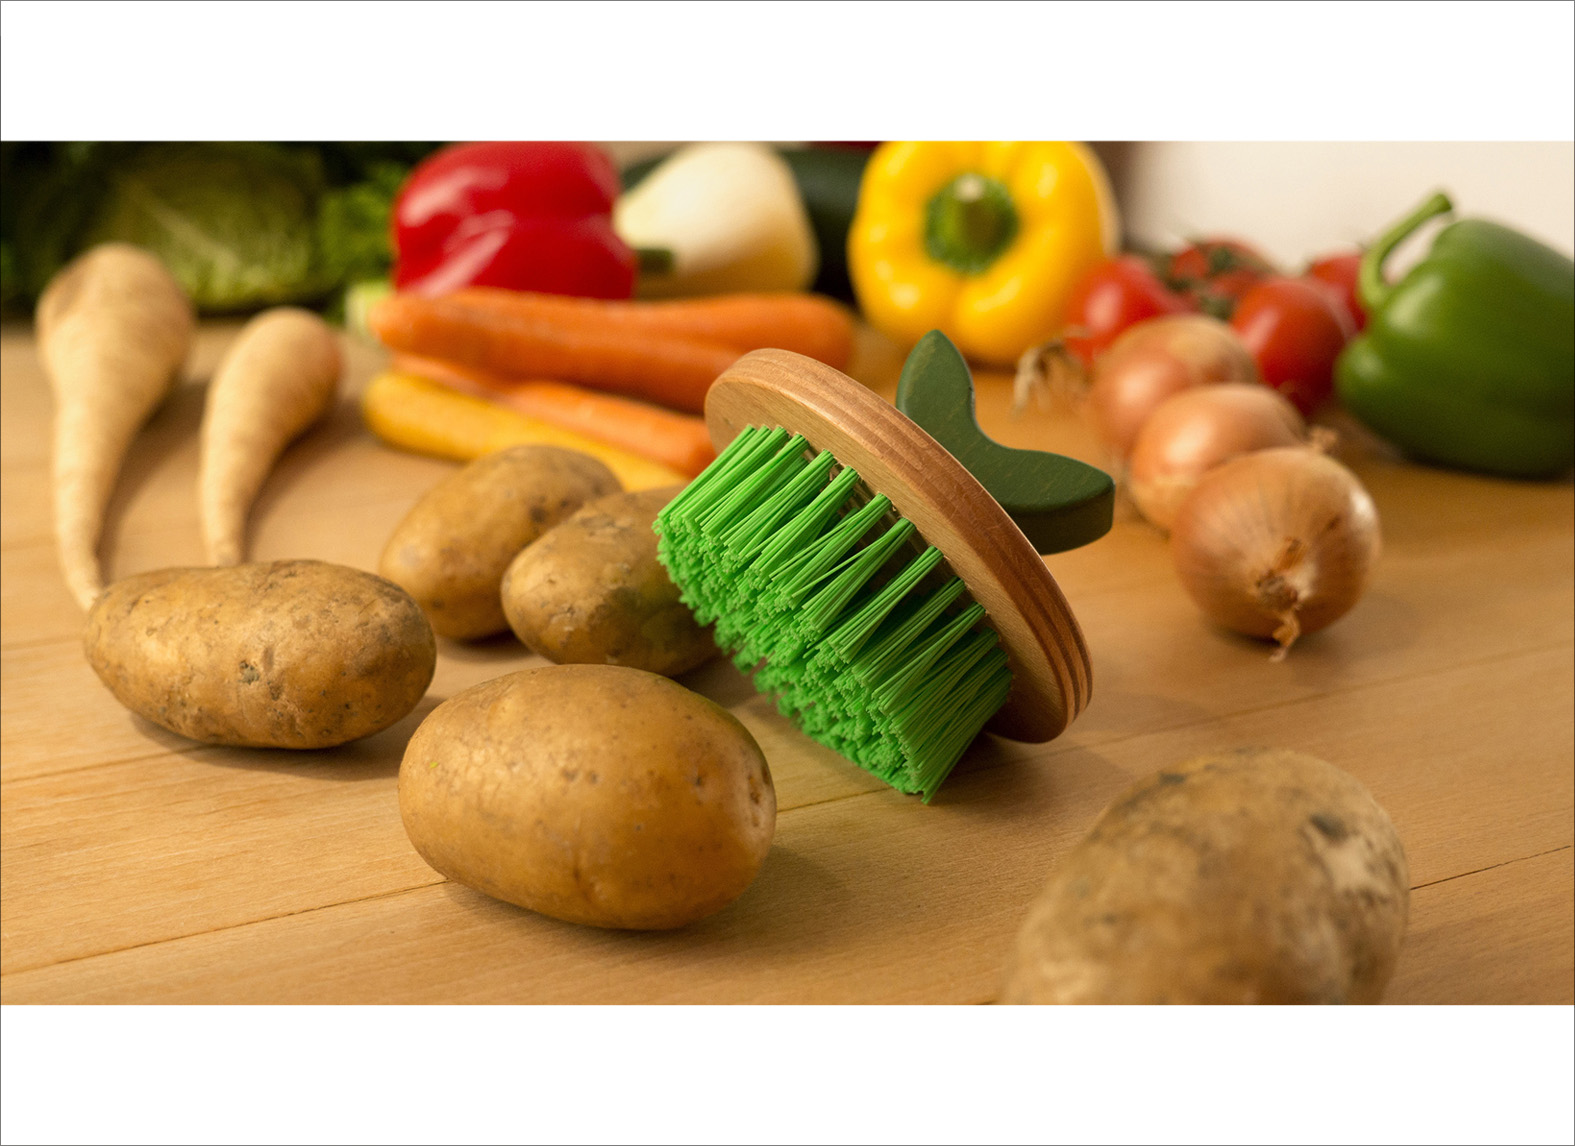 vegetable brush brush.up